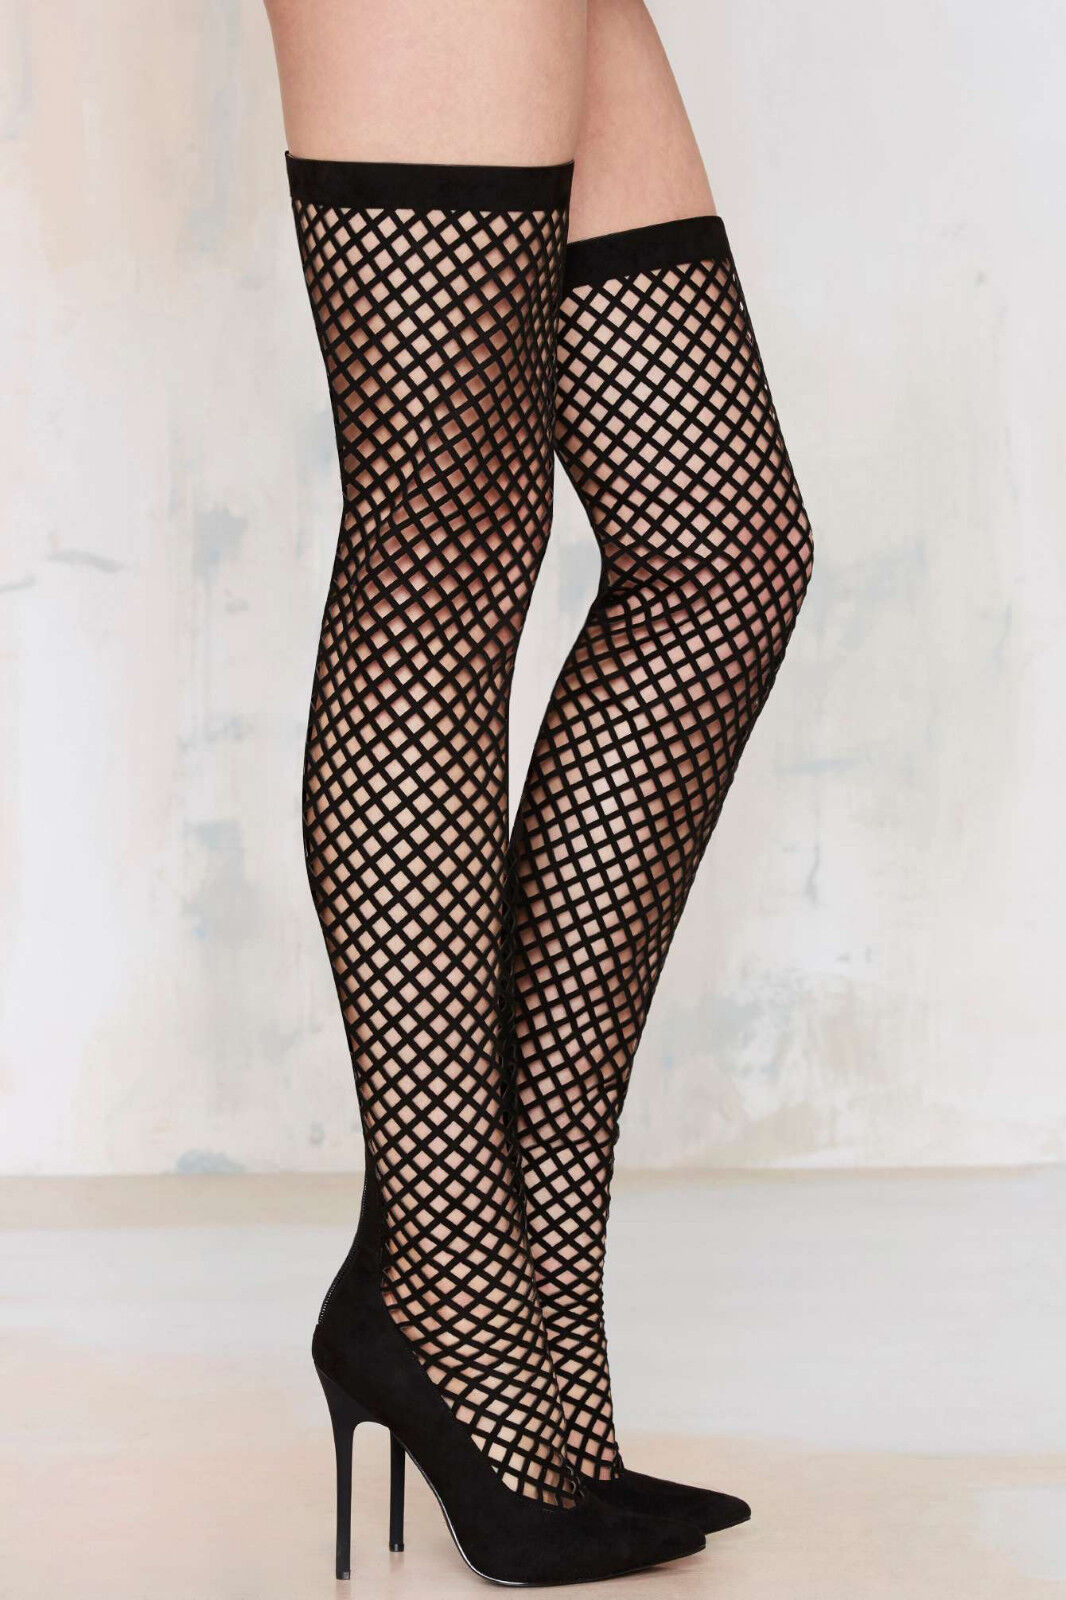 NEW NASTY GAL  158 BLACK IN THE CAGE THIGH HIGH BOOTS SHOES SZ 6